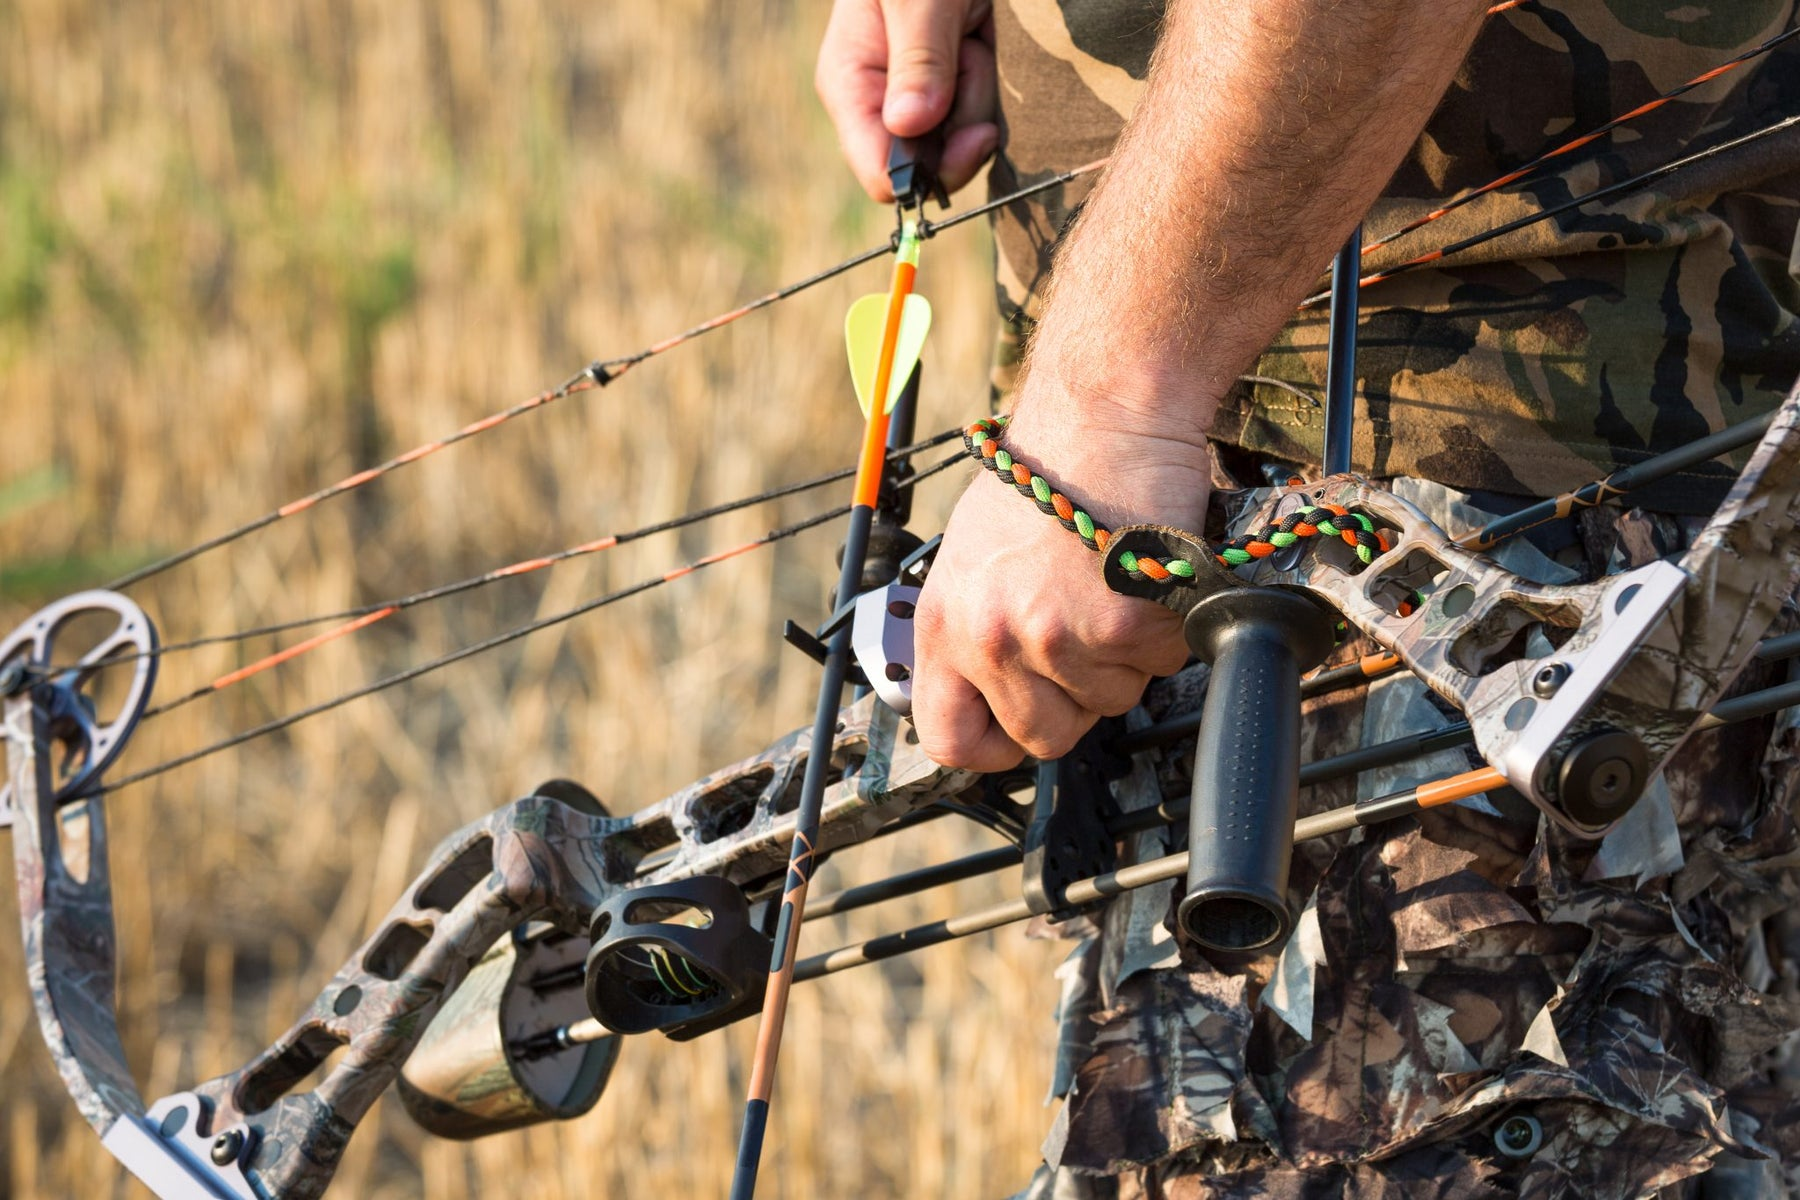 Top 10 Compound Archery Bow under $500